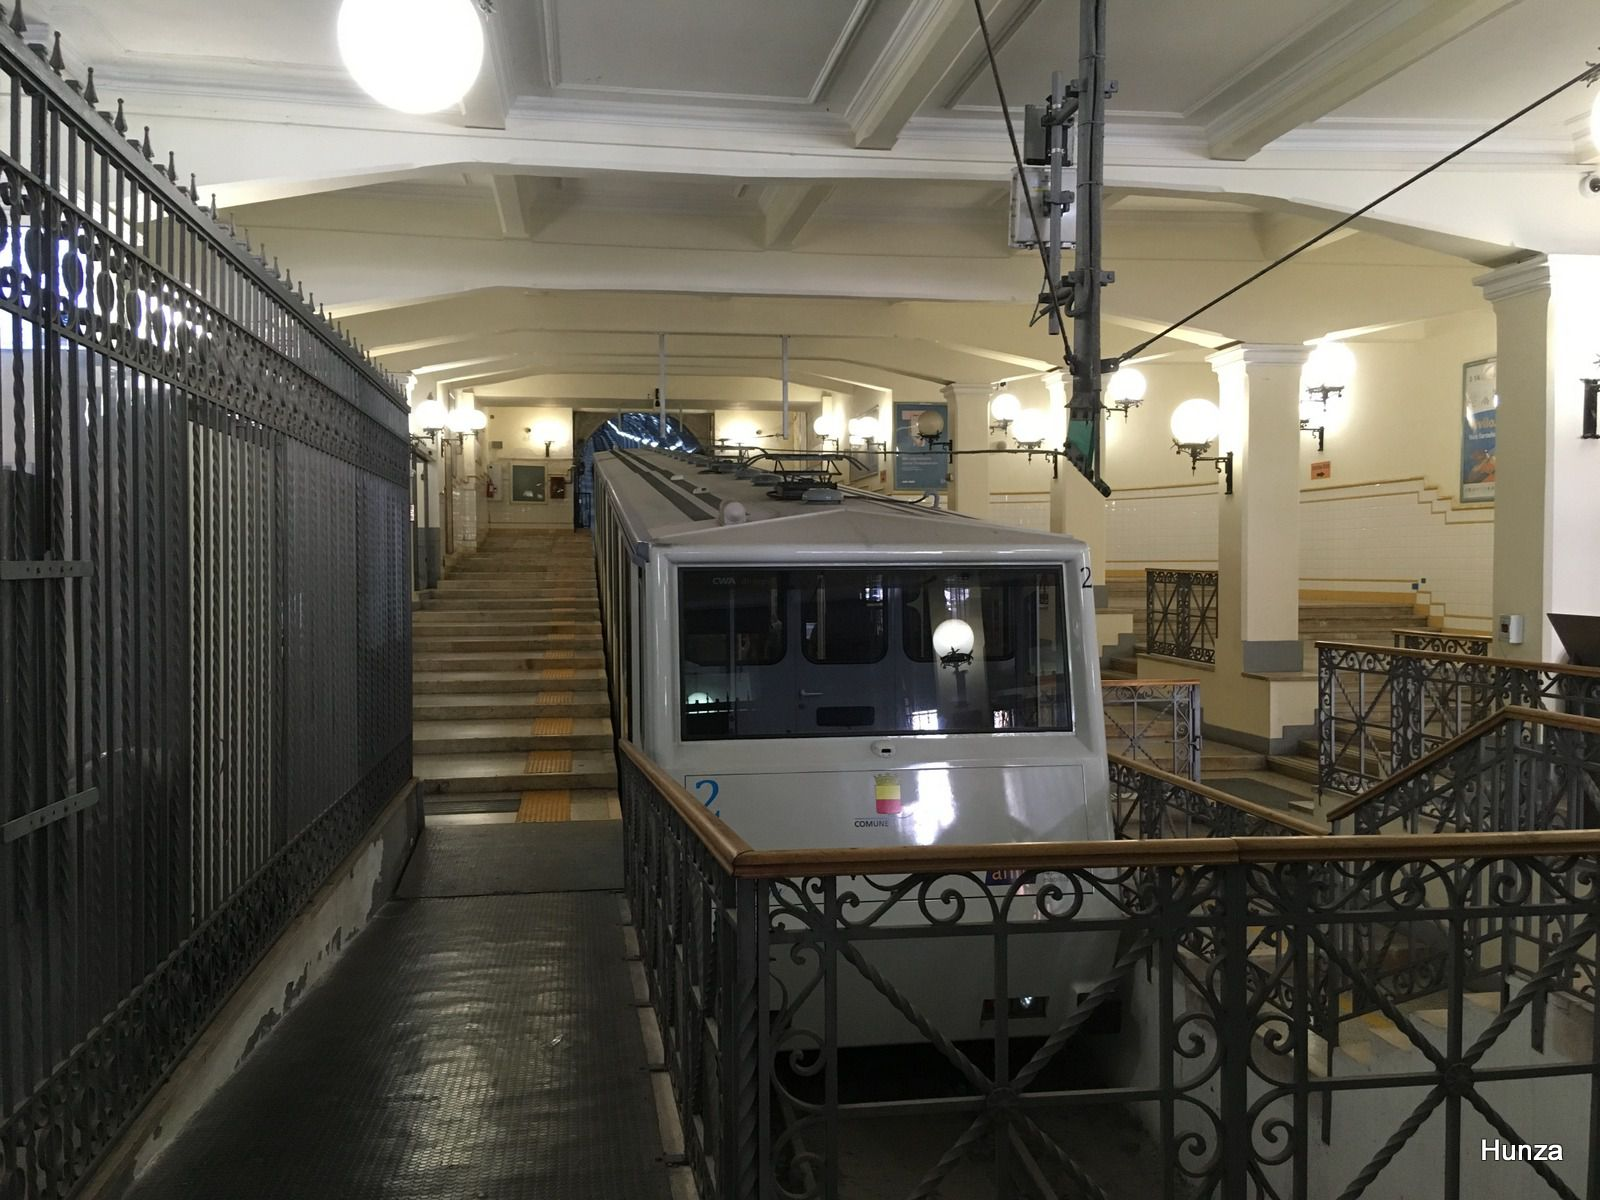 Le funiculaire central